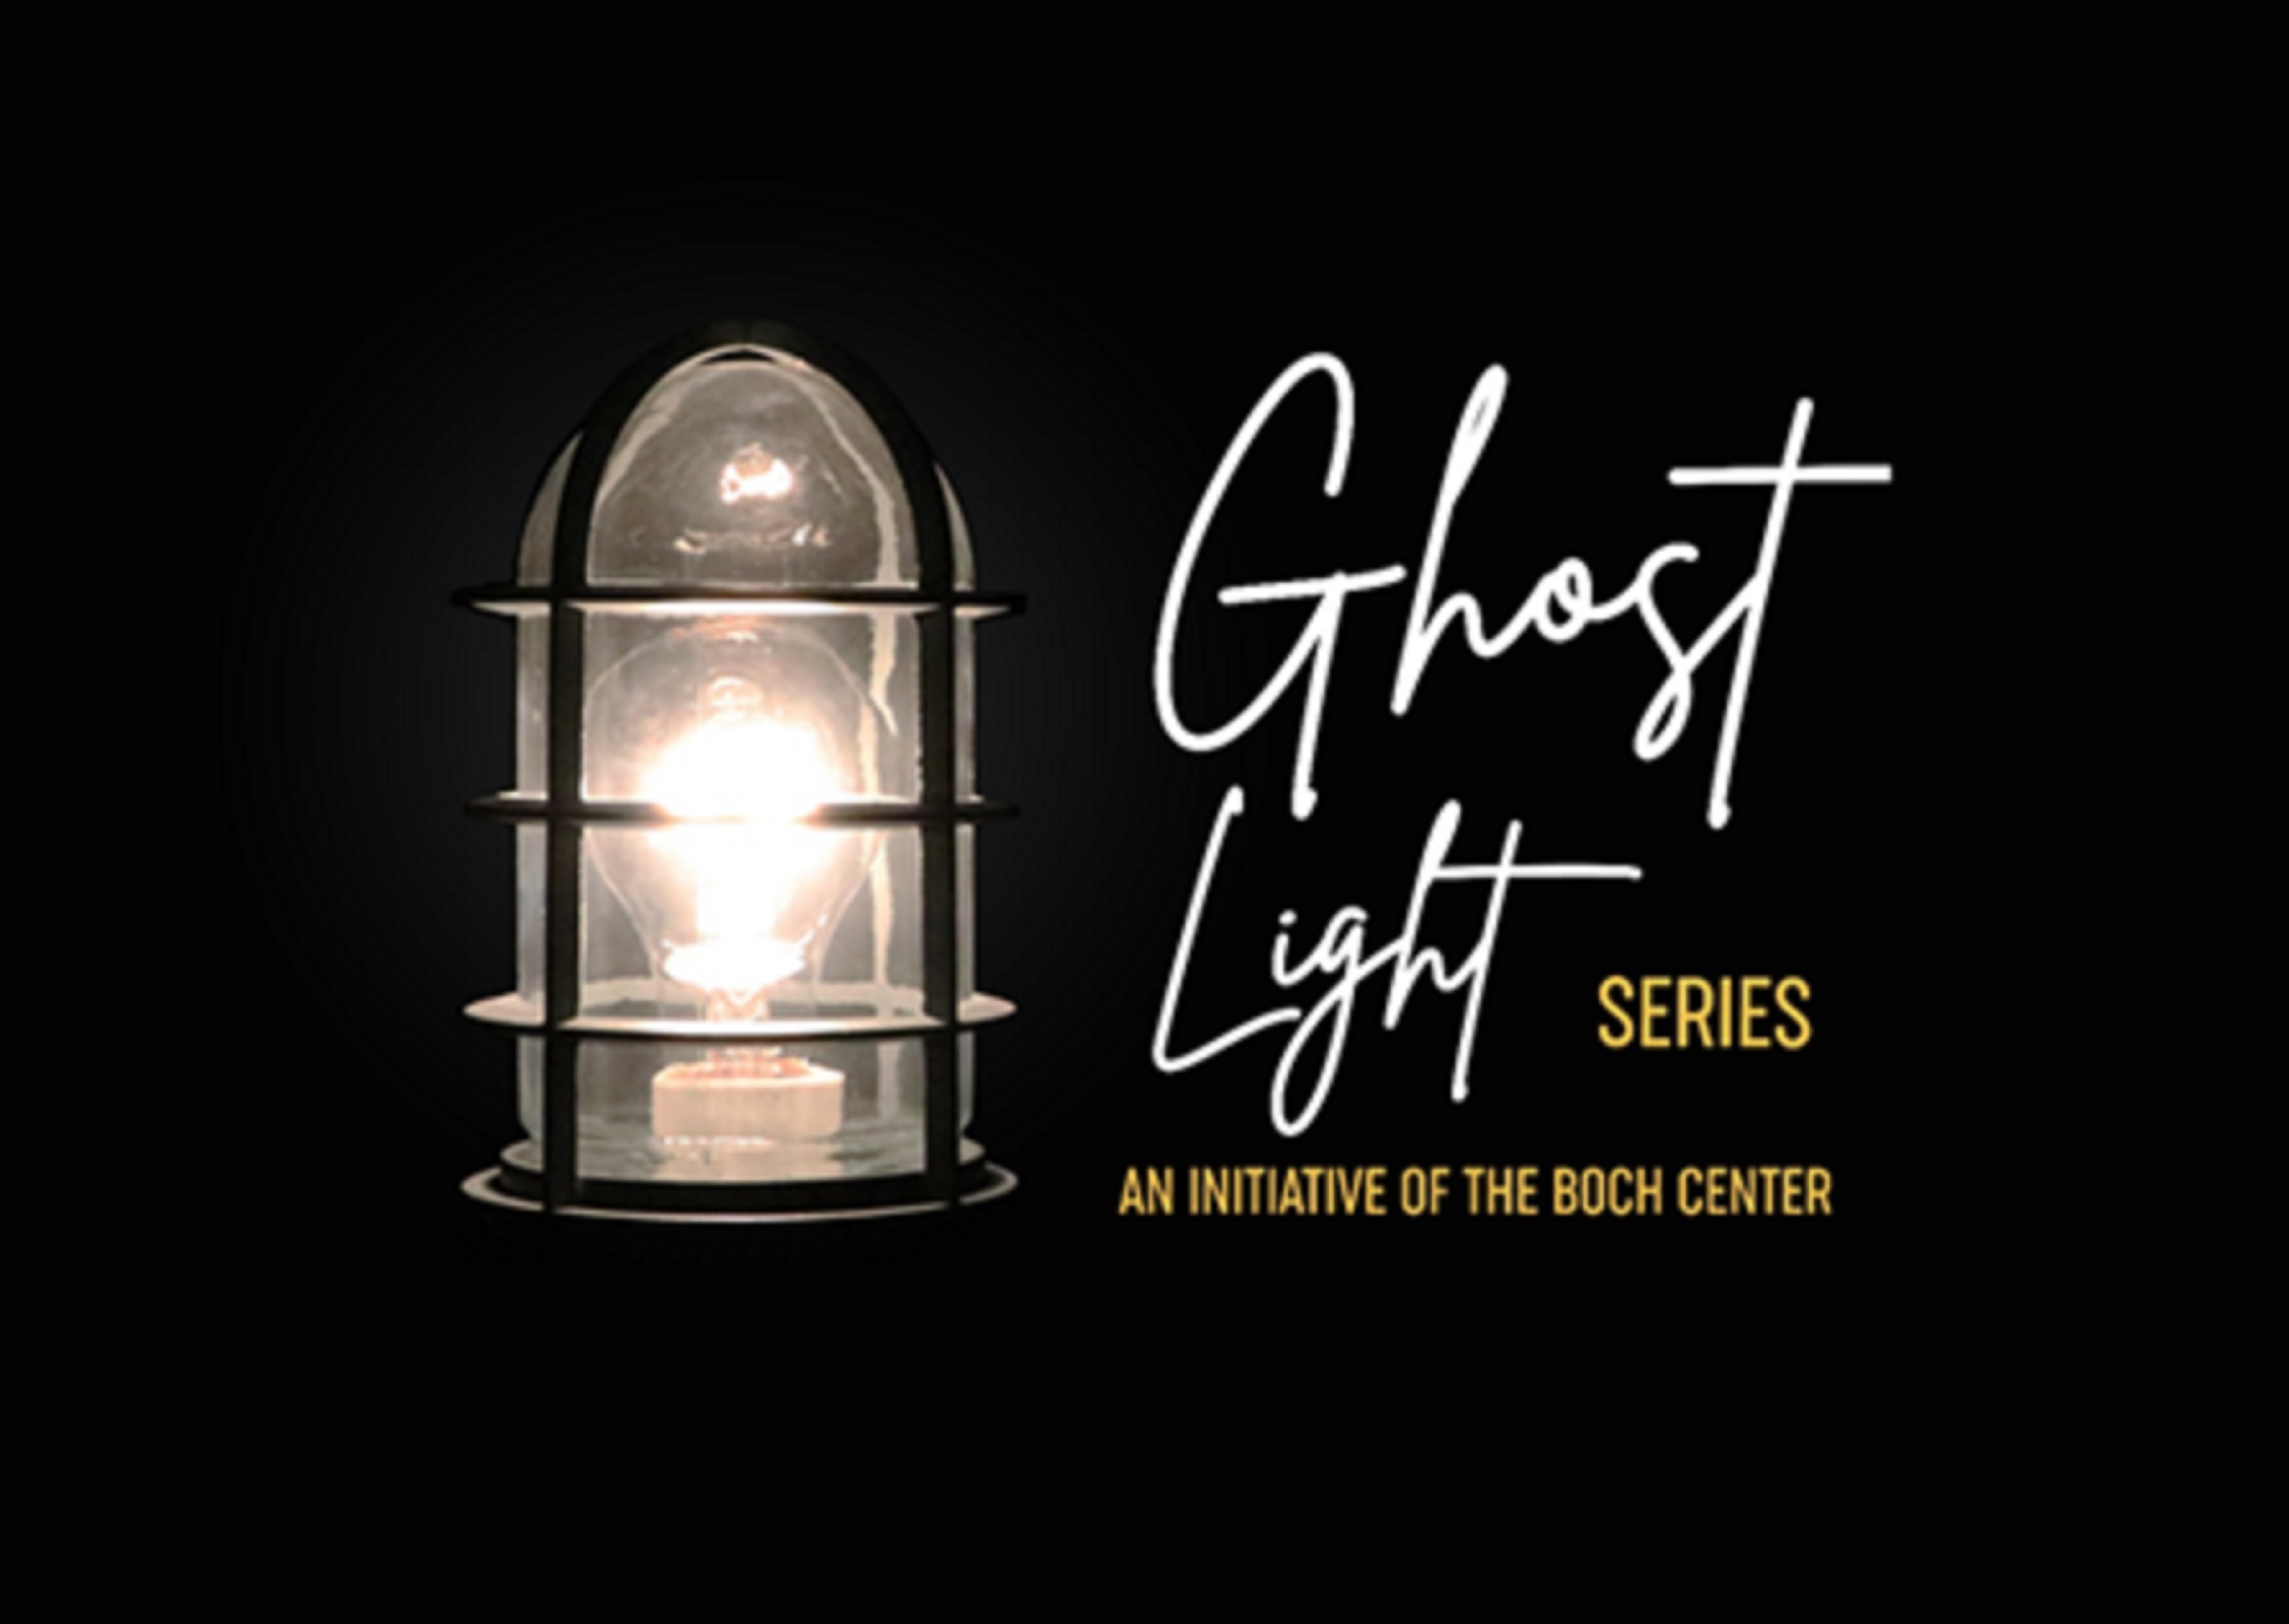 Will Dailey Set to Perform on Boch Center's Ghost Light Series